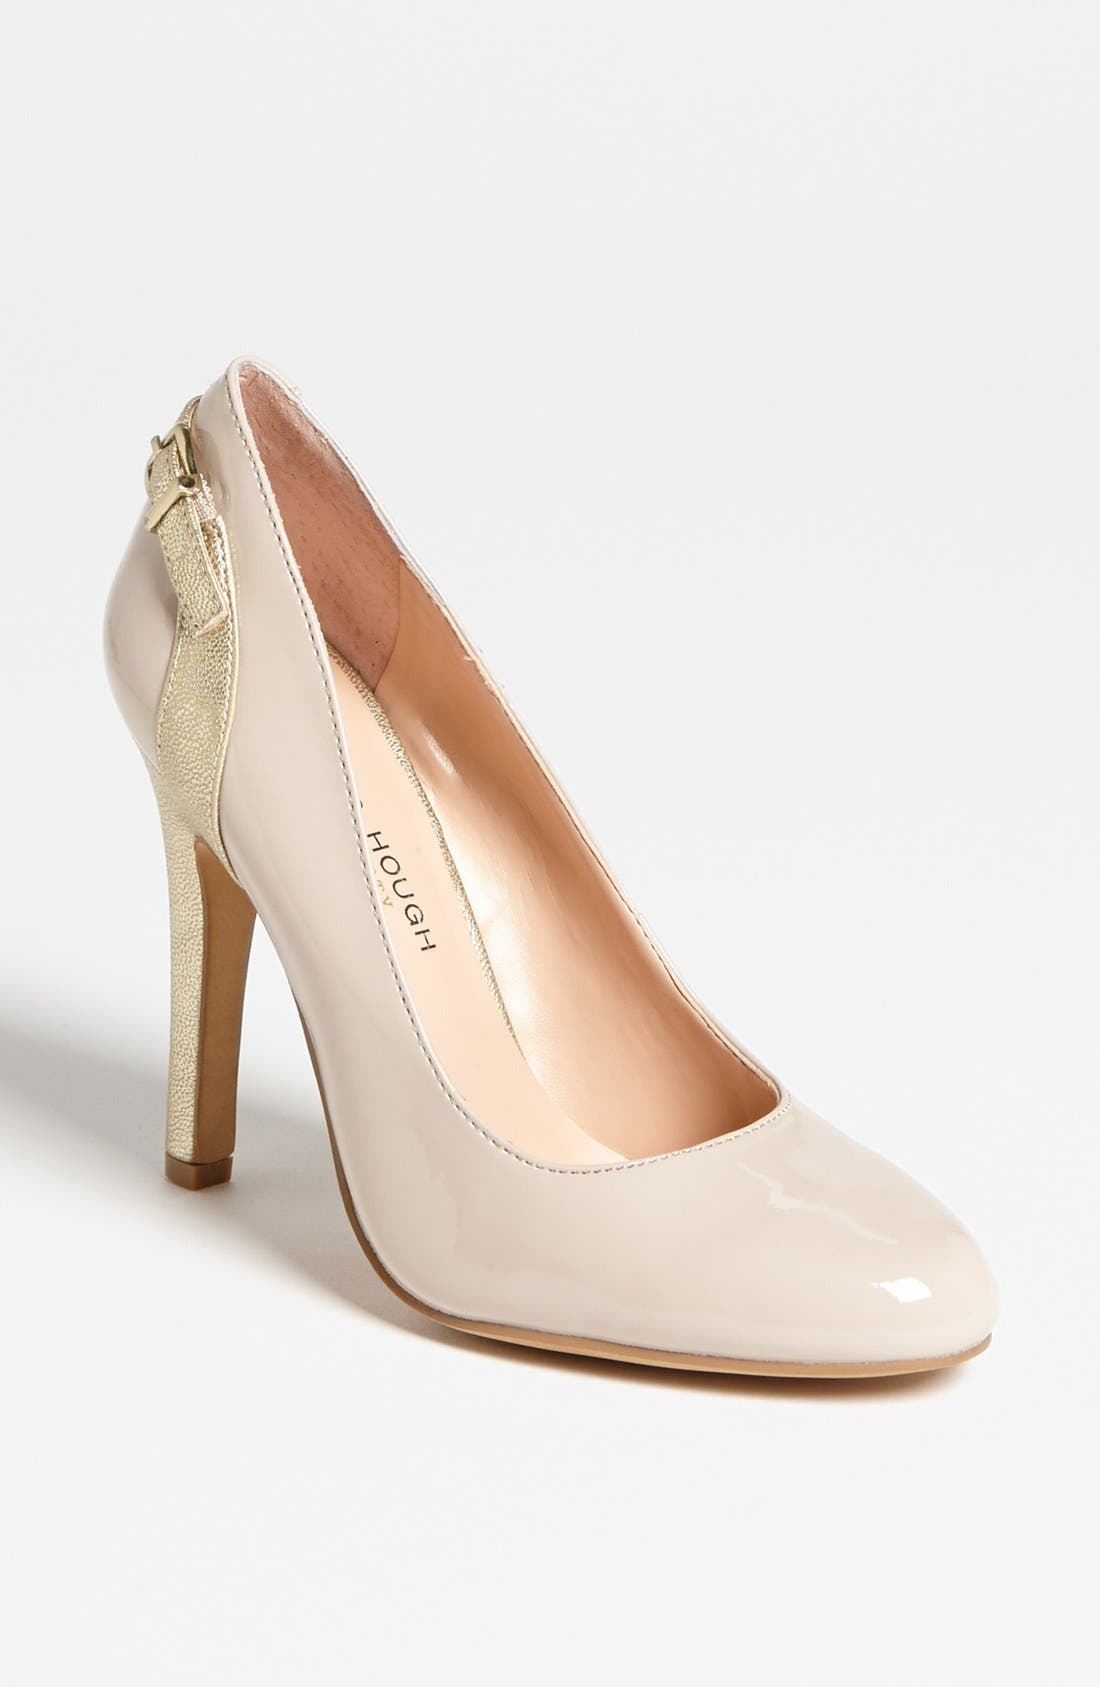 Alternate Image 1 Selected - Julianne Hough for Sole Society 'Jelena' Pump